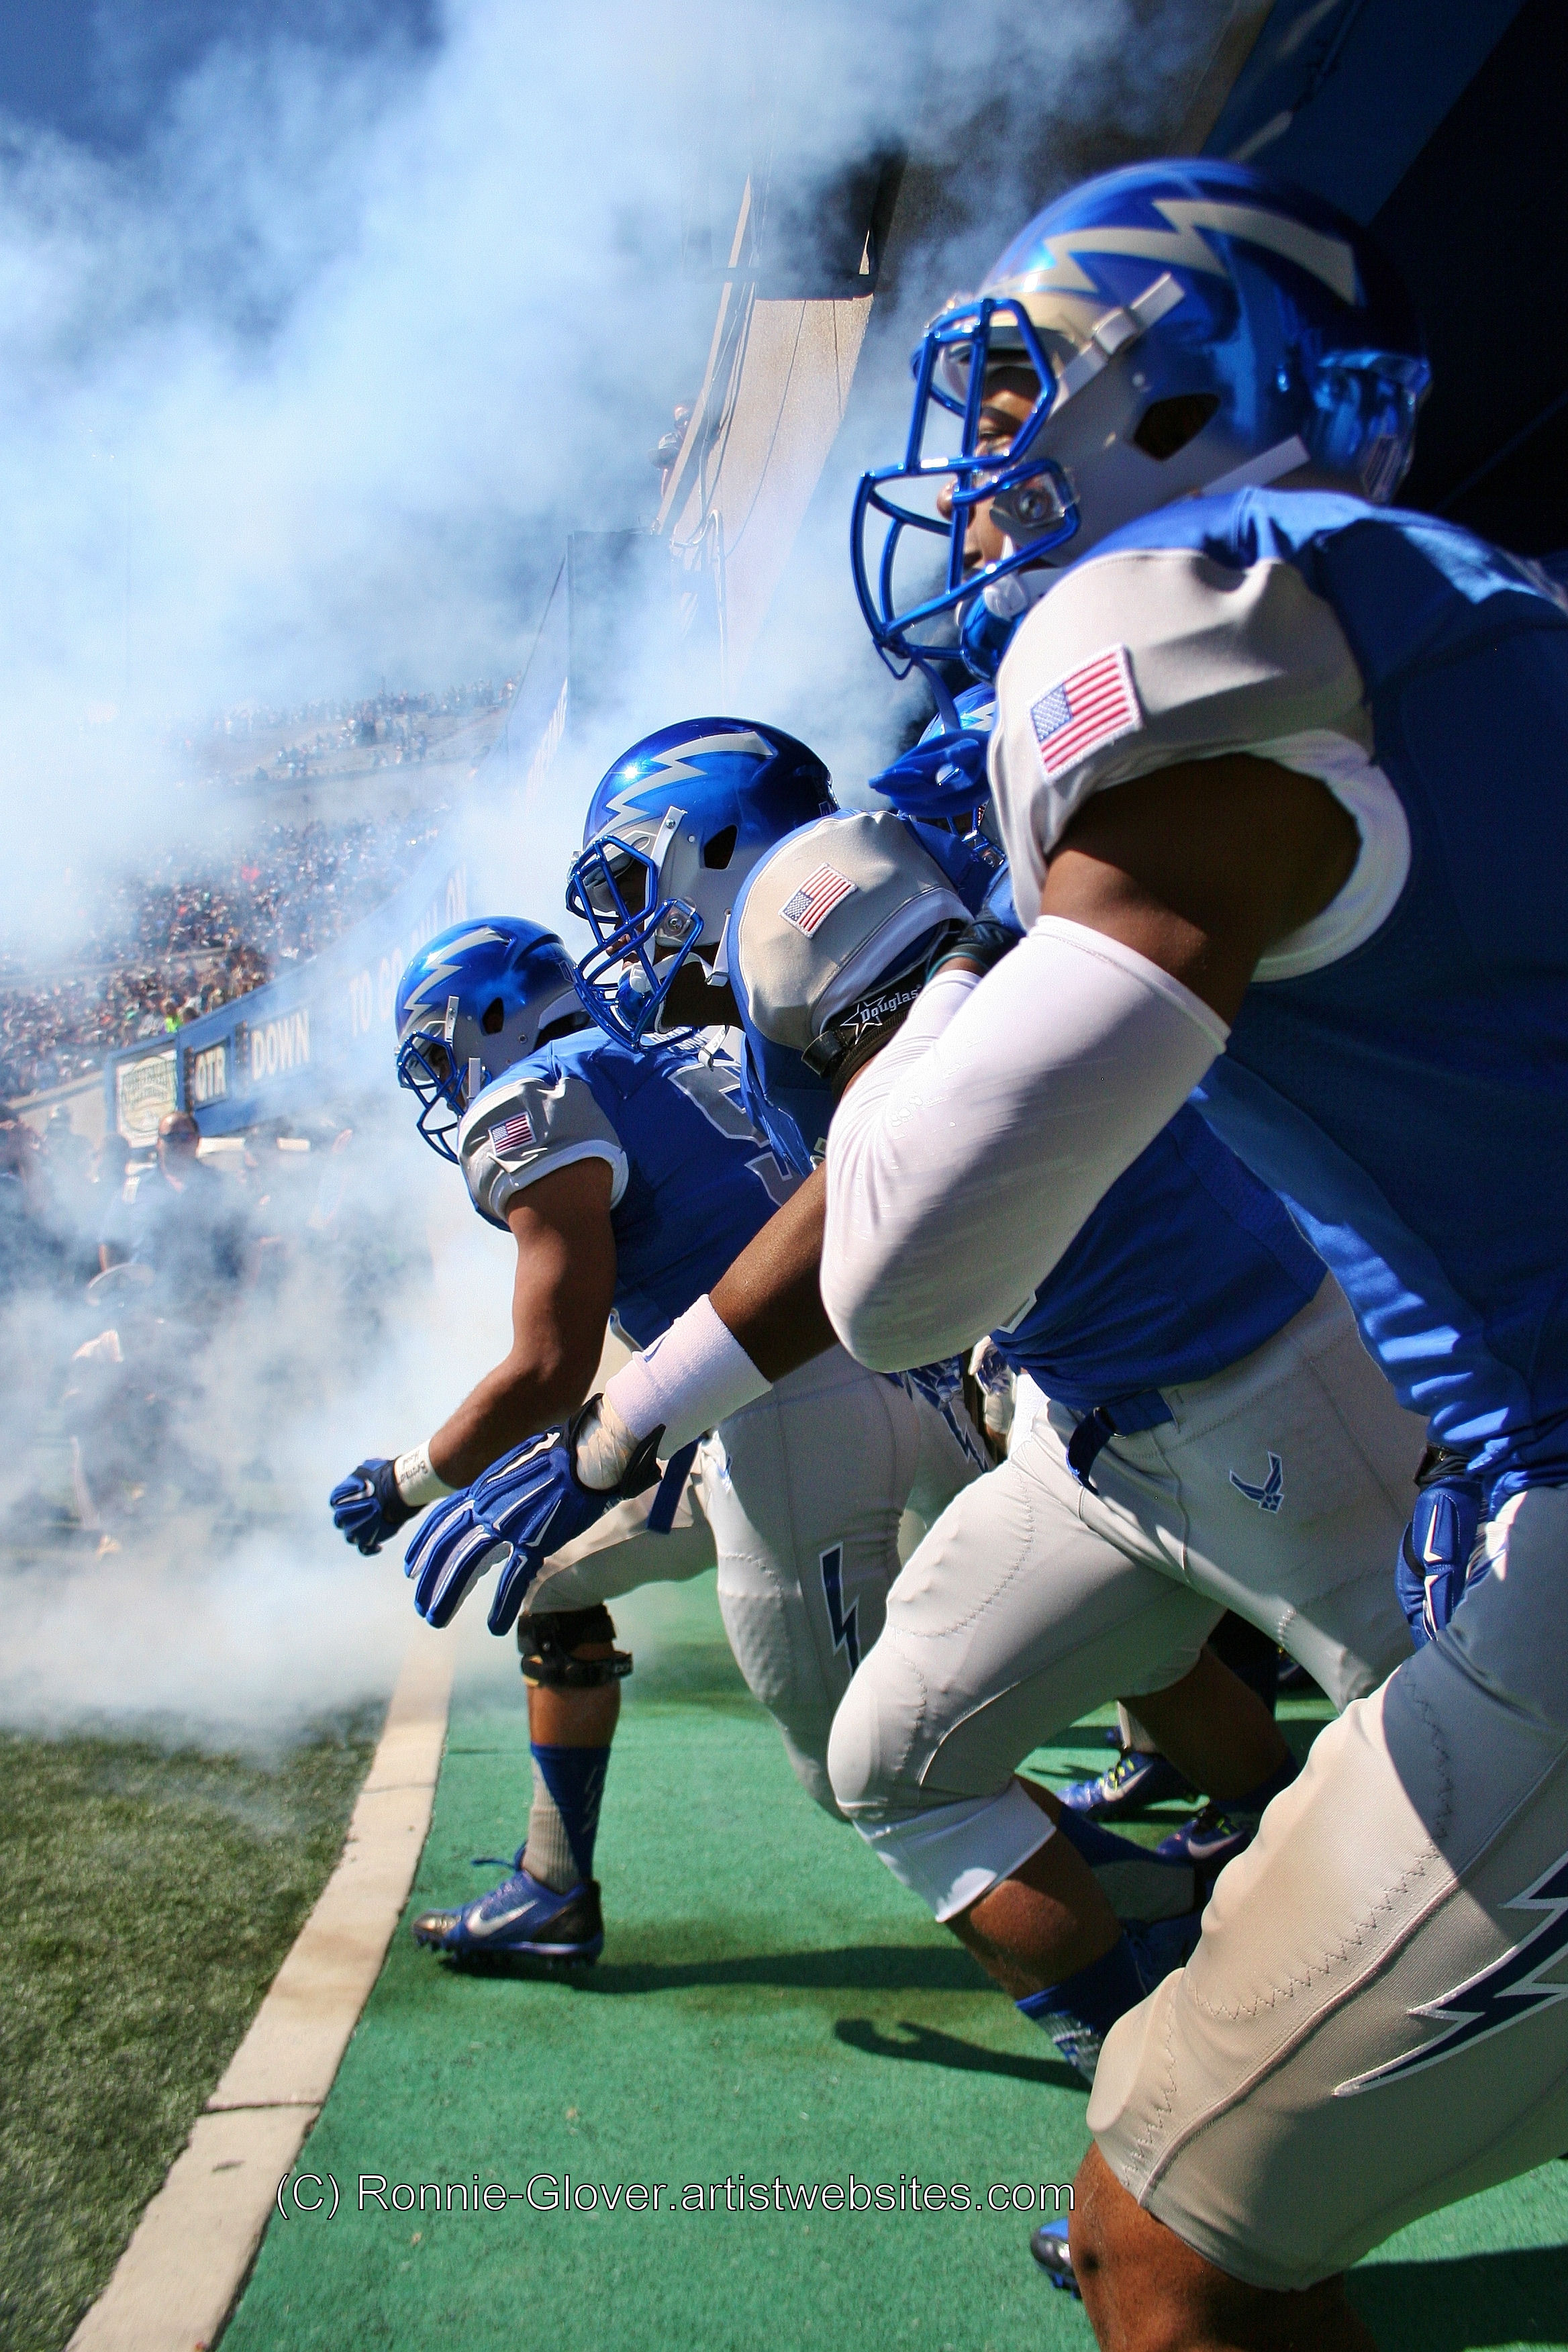 Air Force is about to take the field against Navy